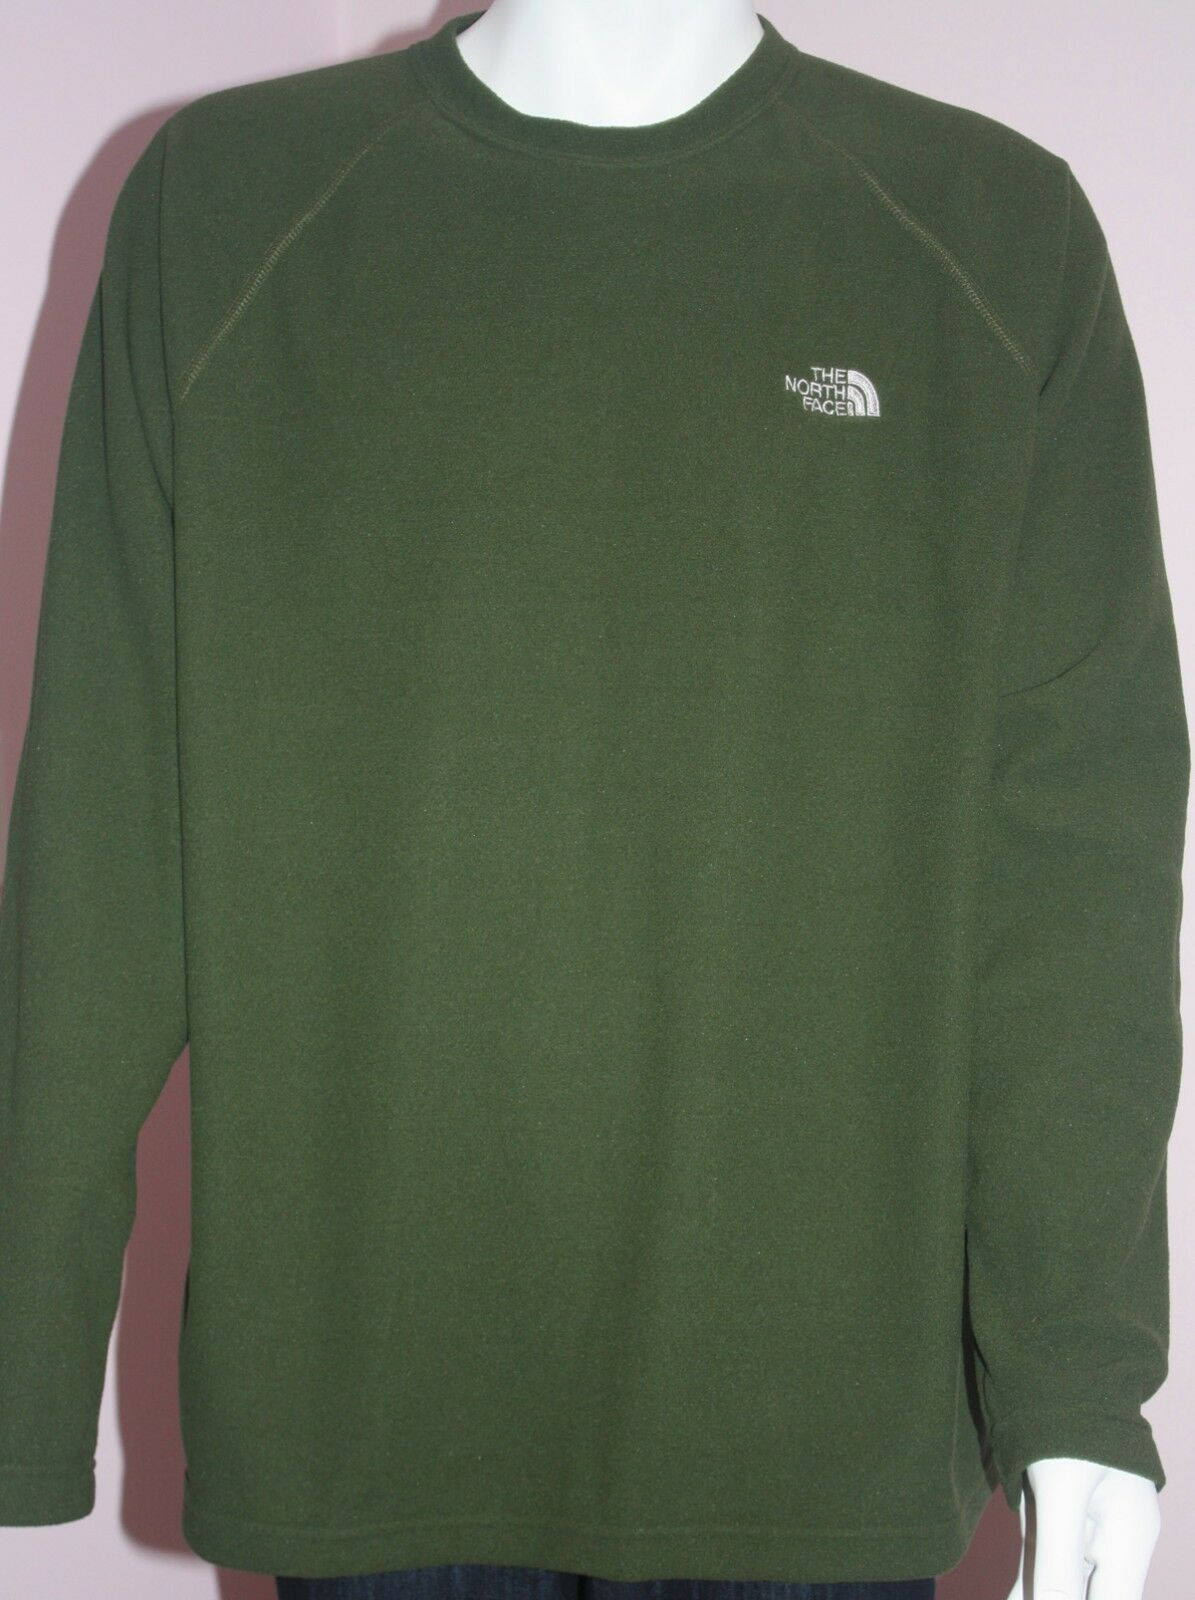 NWT  Herren THE NORTH FACE English Grün Cooper Sweater Größe XL